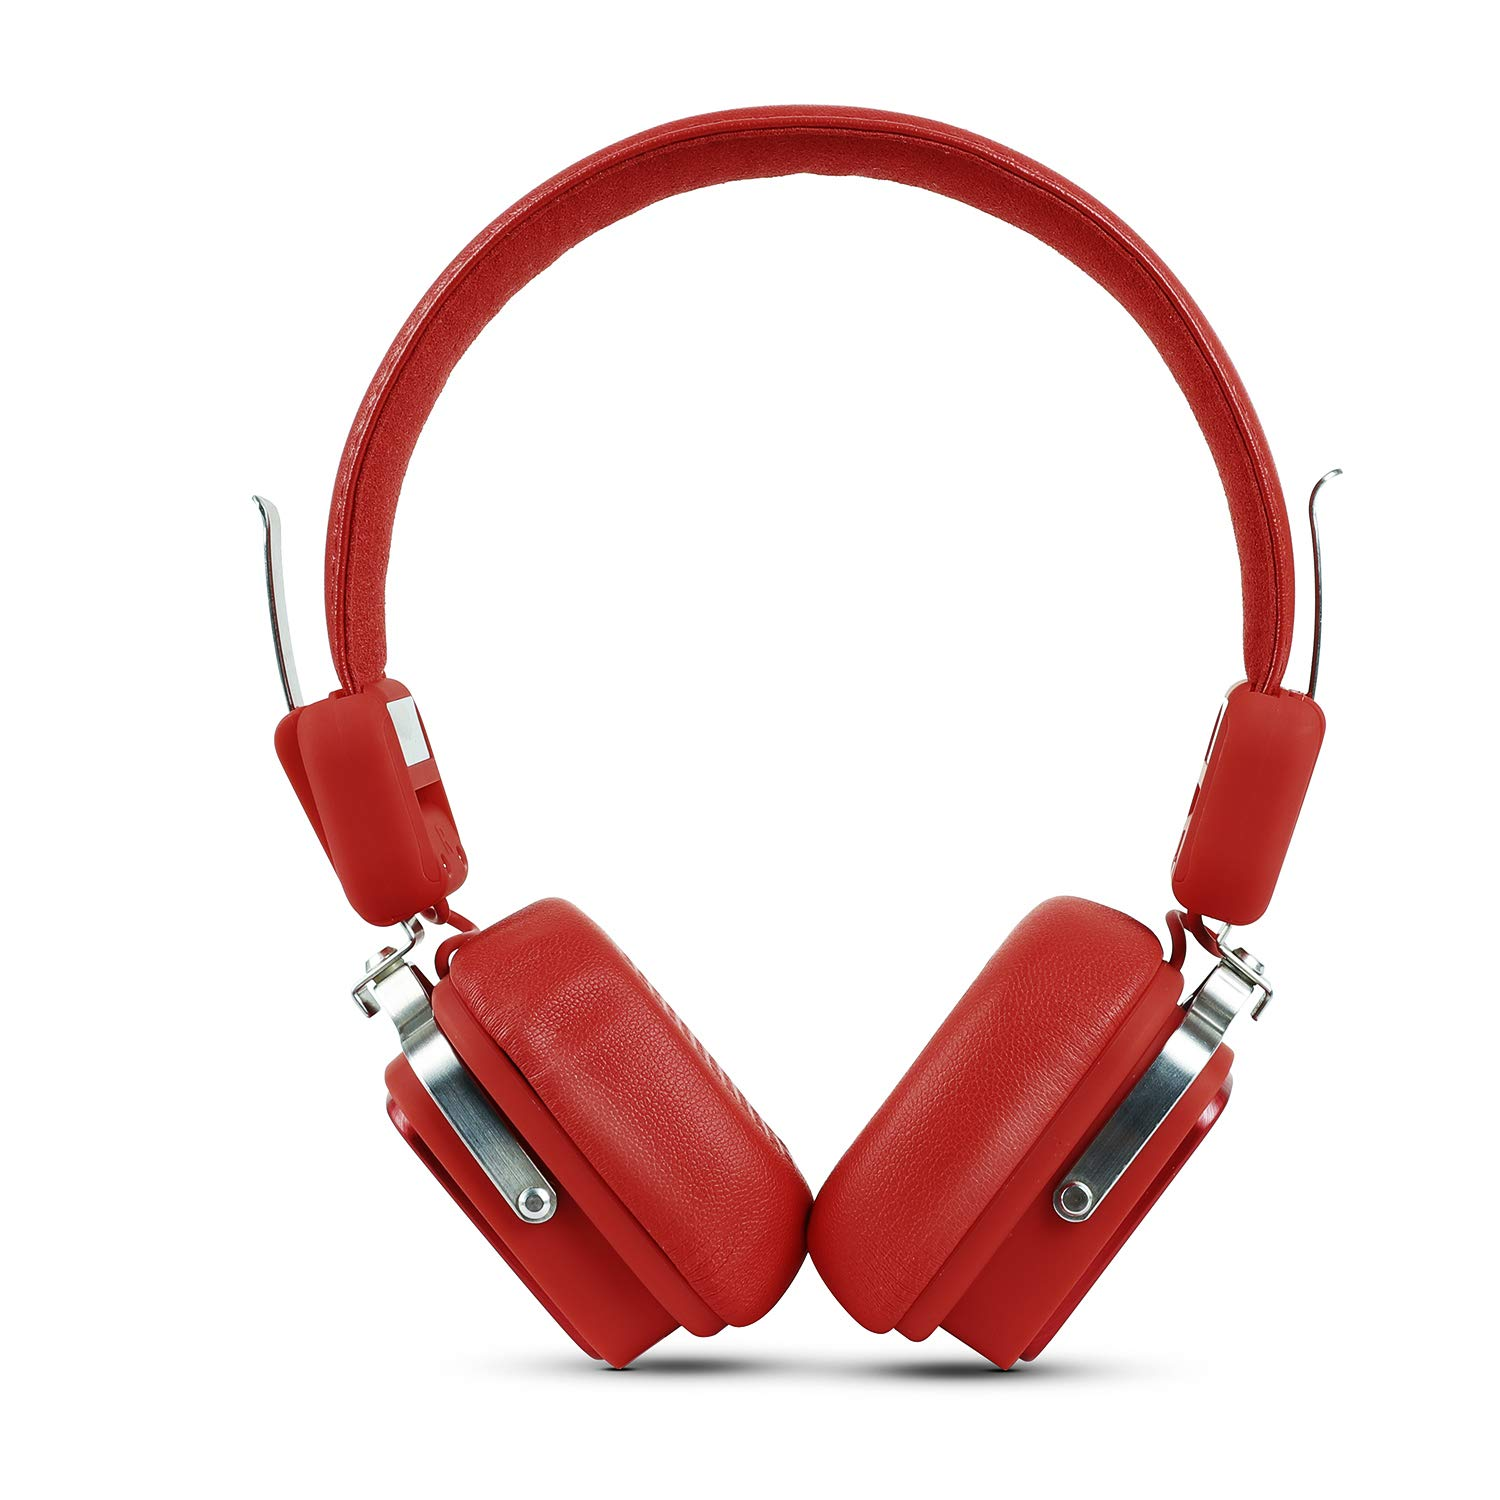 boAt Rockerz 600 Kings XI Punjab Edition Bluetooth Headphone with Luxurious Sound, Plush Earcushions, Foldable Ergonomic Design and Up to 8H Playtime (Red)